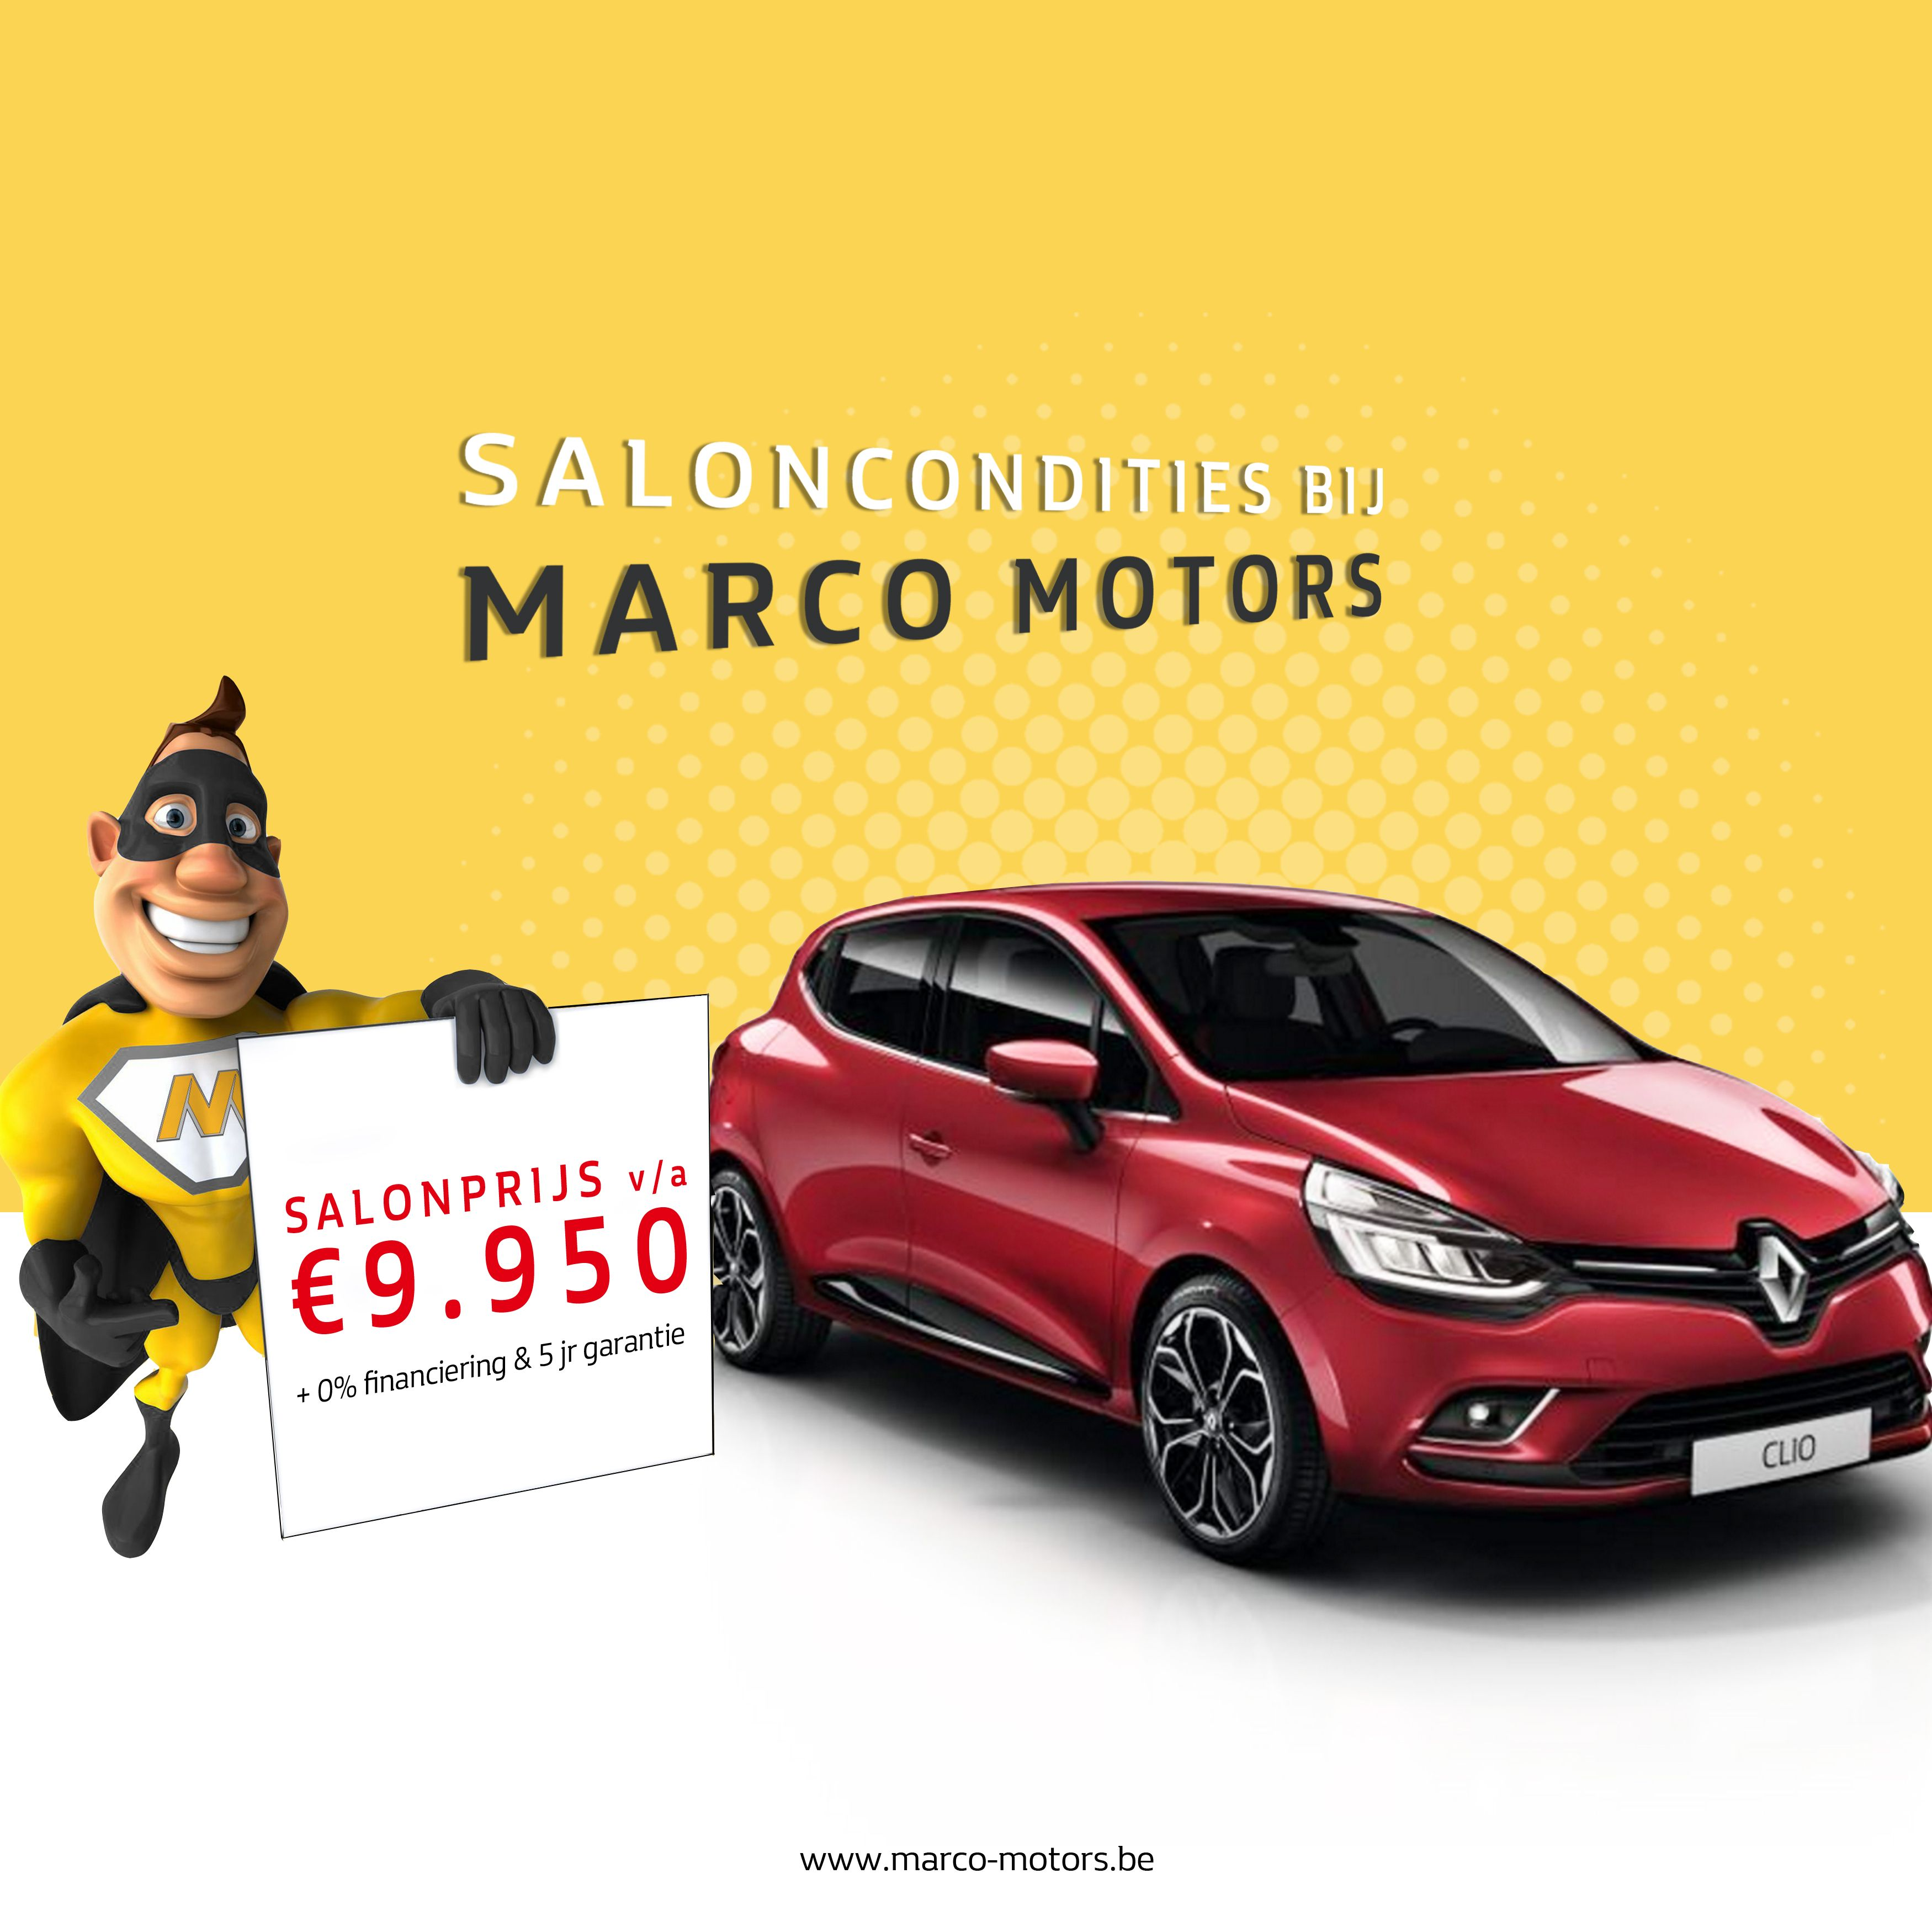 Renault saloncondities 2017